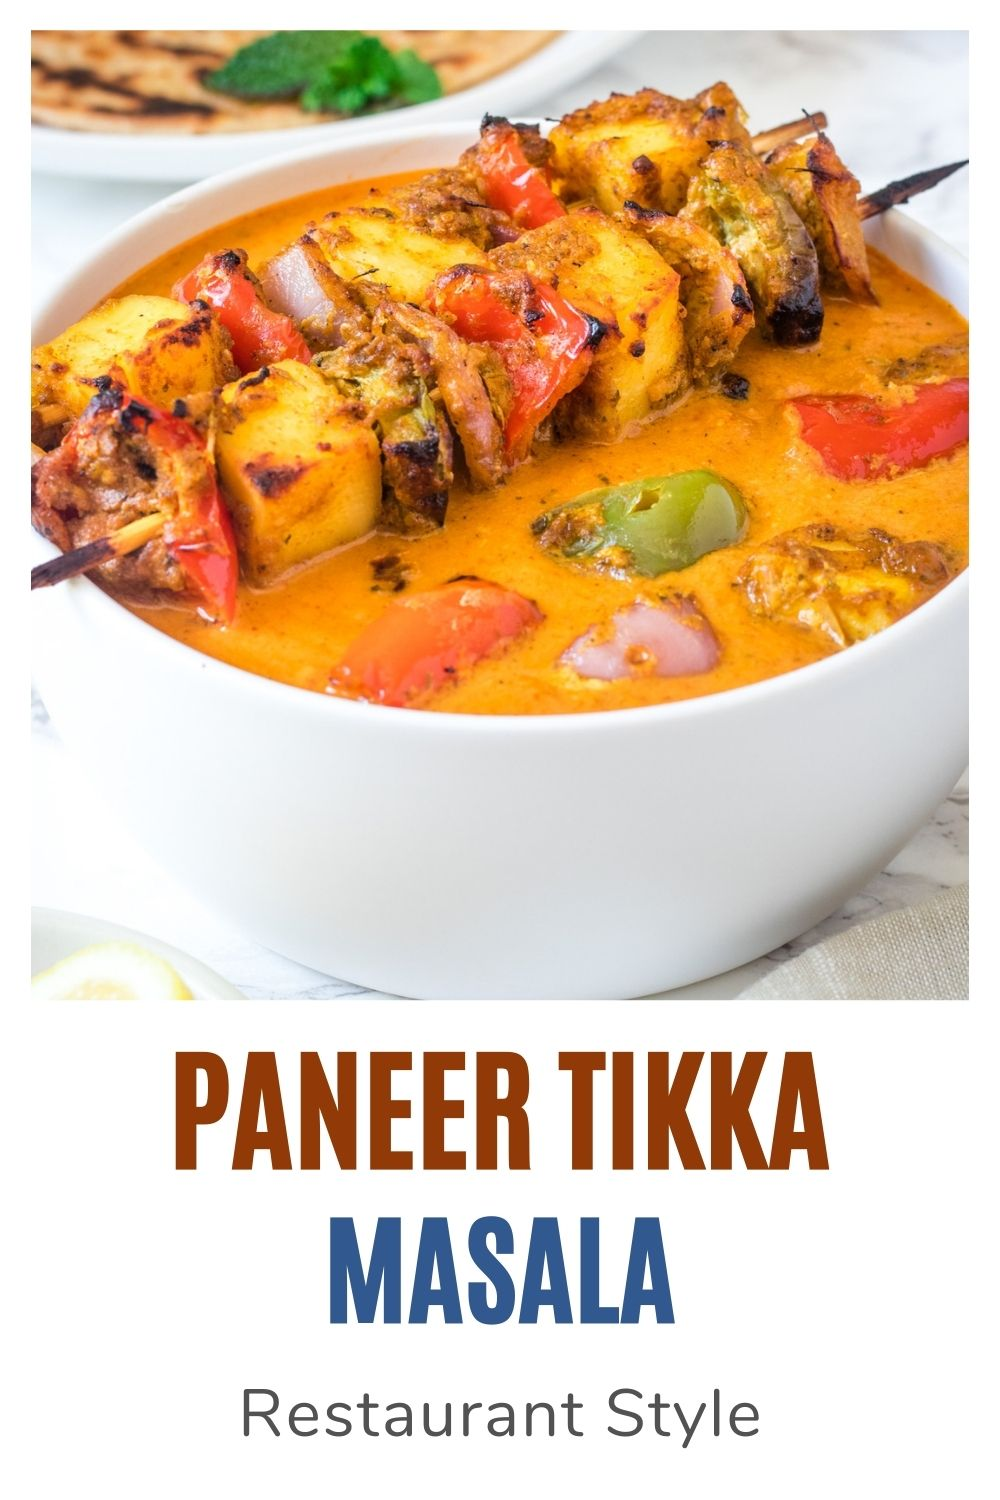 paneer tikka masala curry with text on the image for pinterest